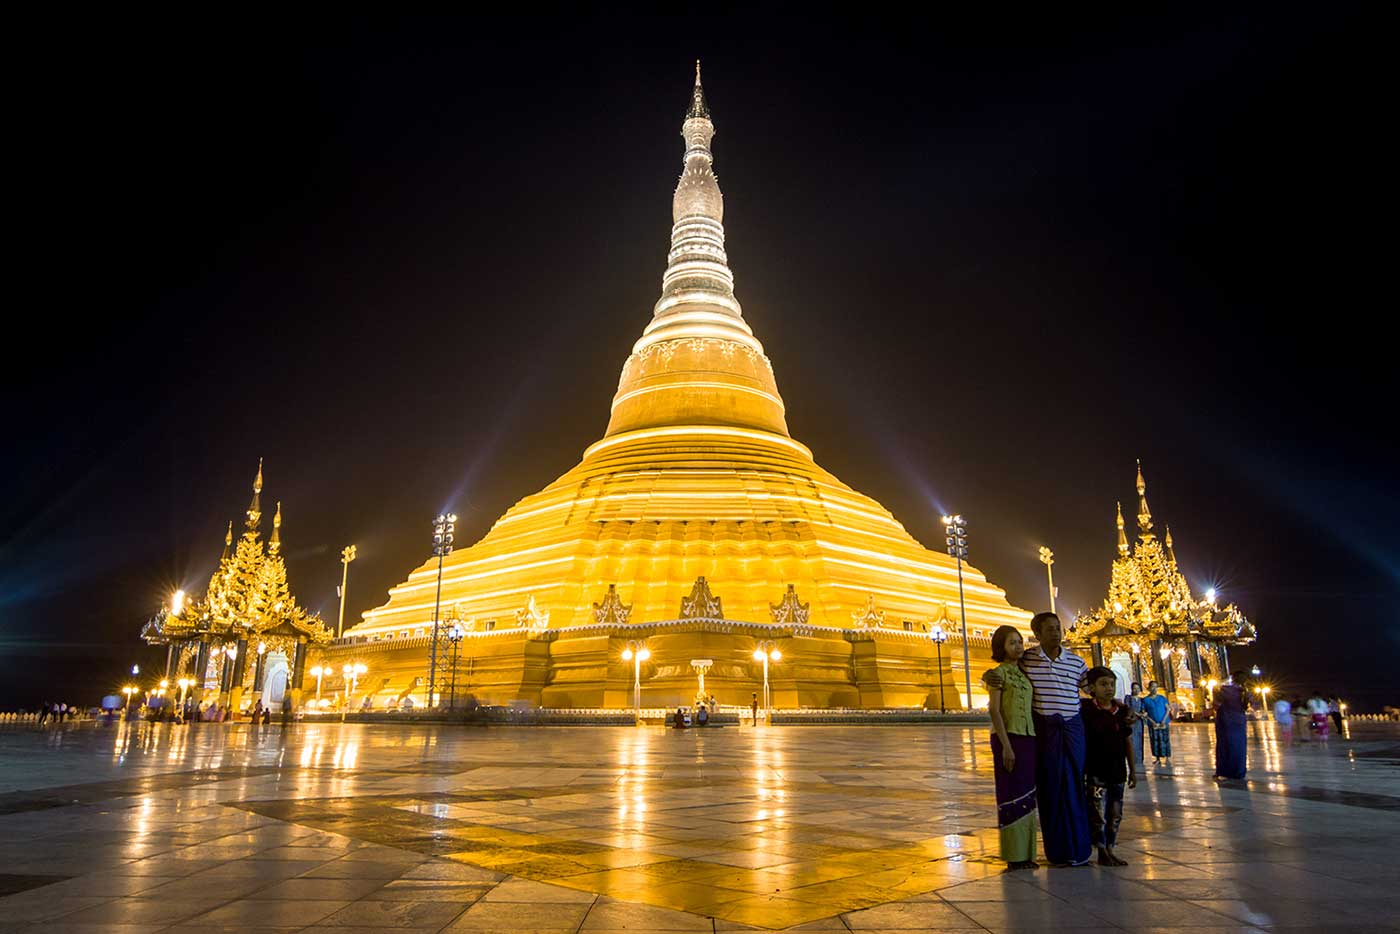 Locals pose for photos outside the Uppatasanti Pagoda.